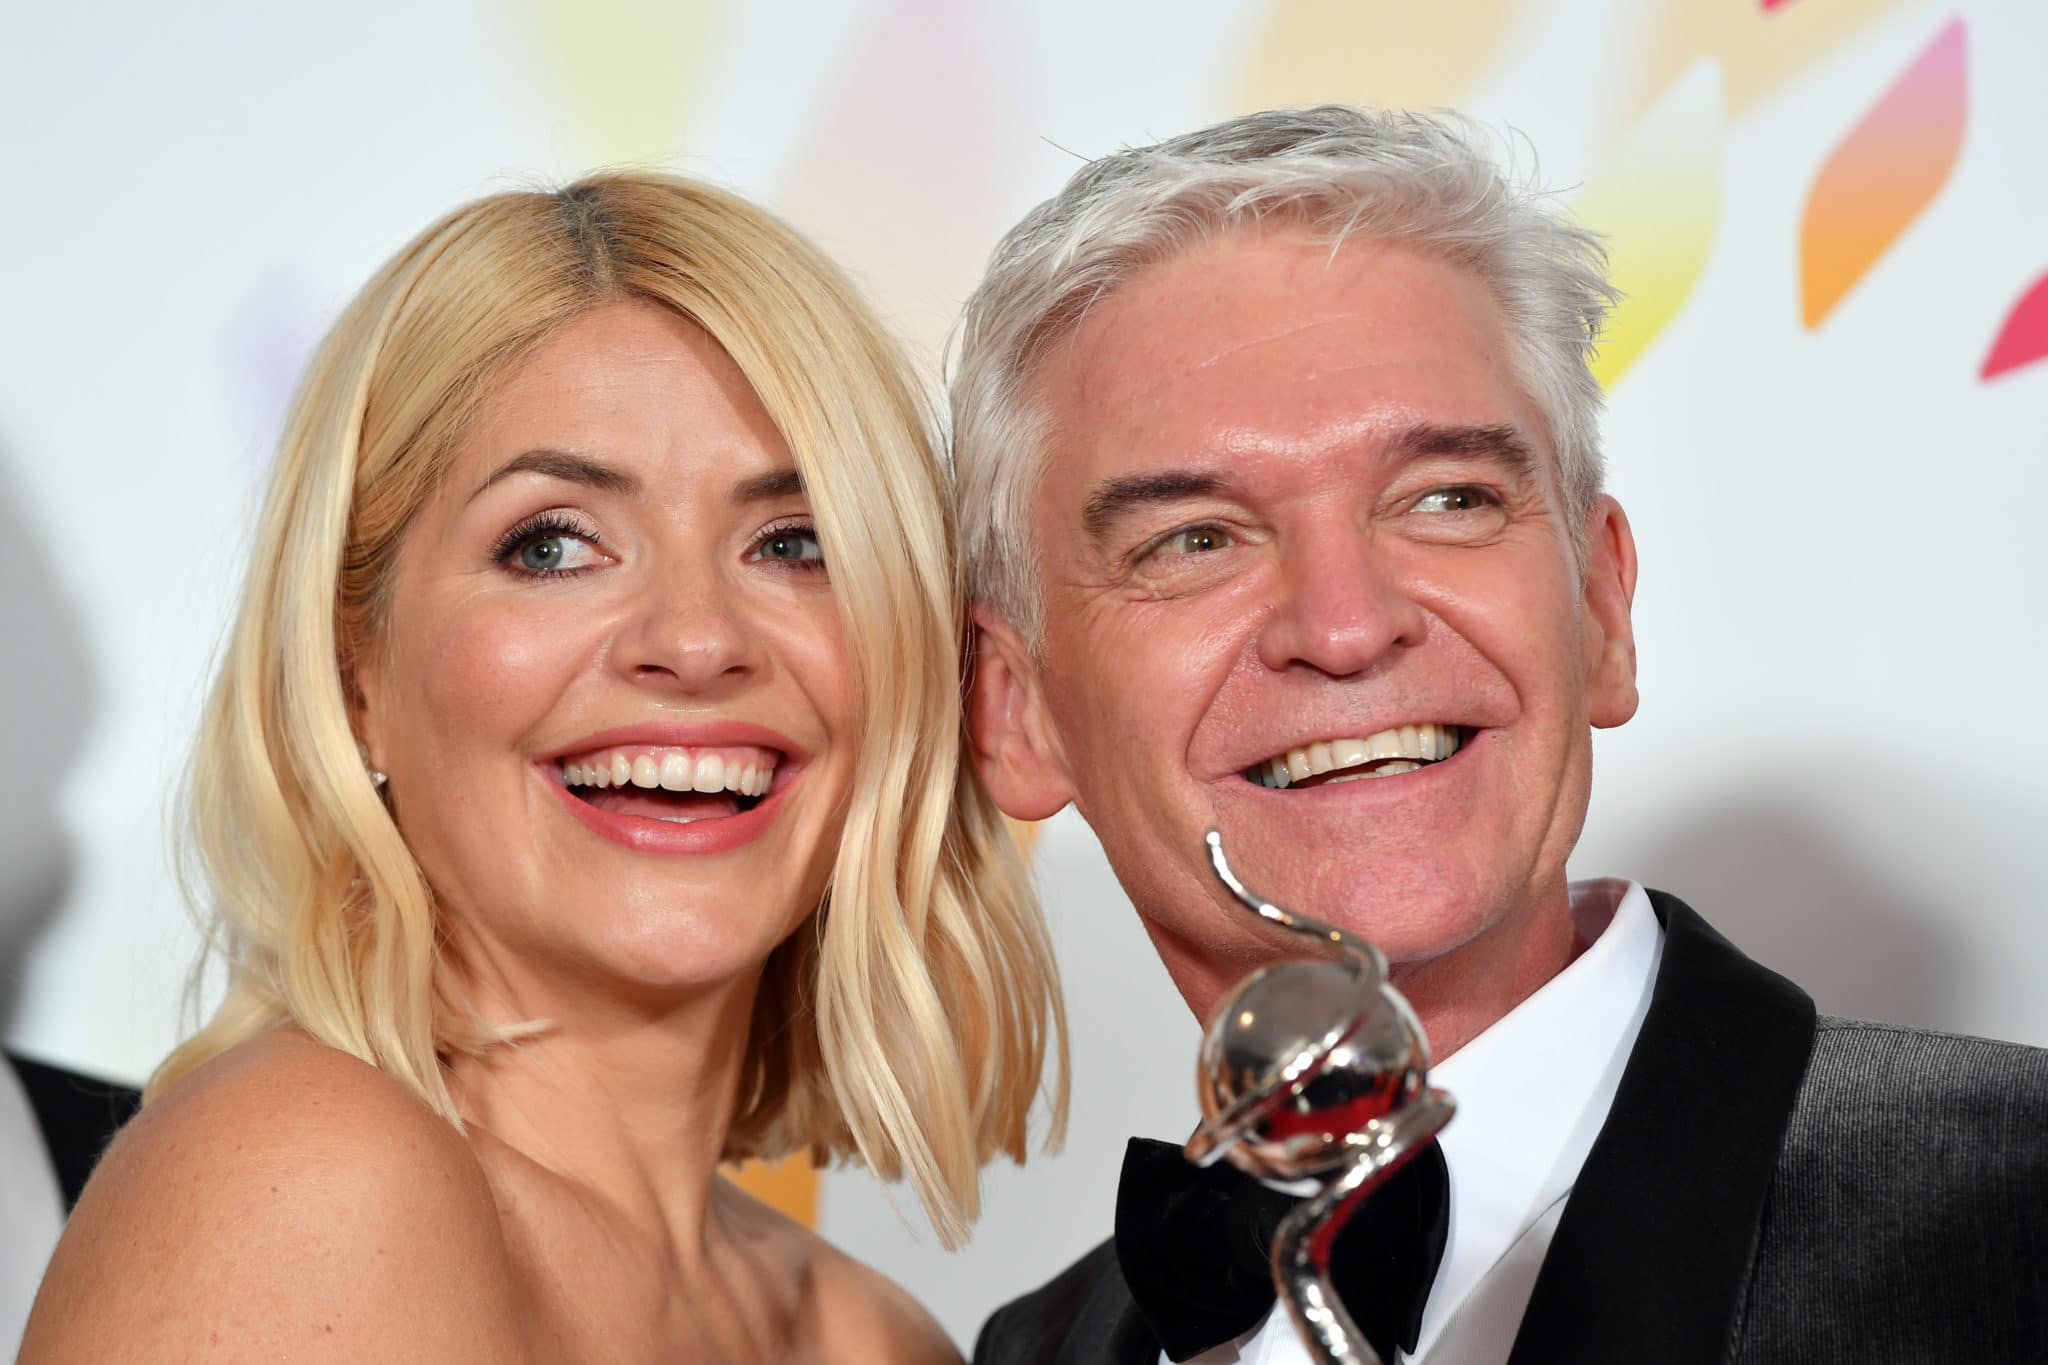 Holly Willoughby and Phillip Schofield pose with an award at the National Television Awards 2020